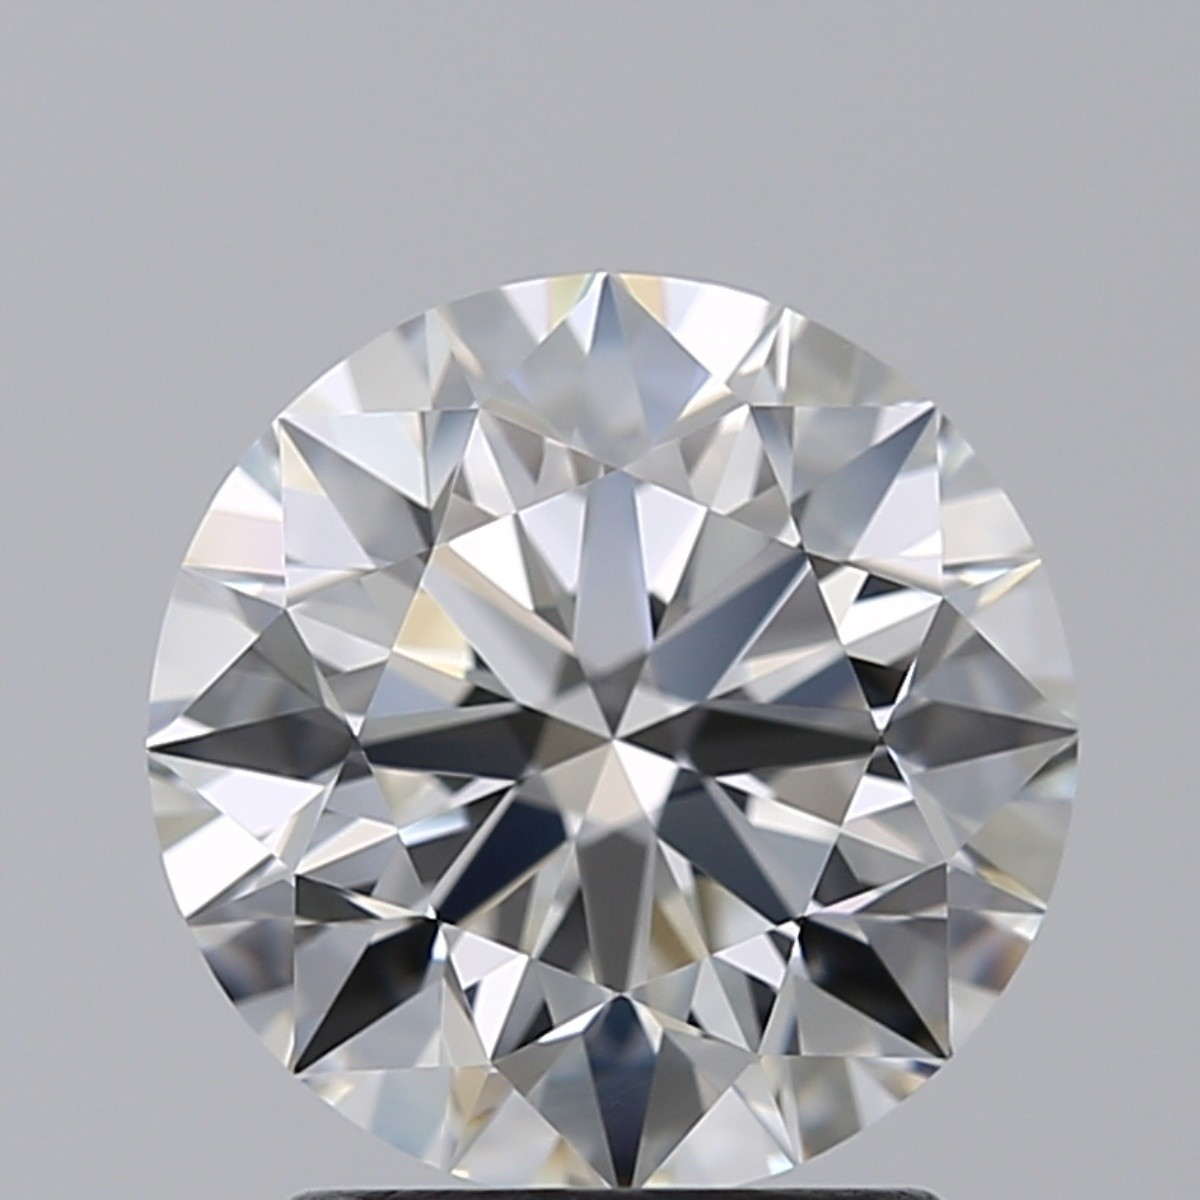 2.05 Carat Round Brilliant Diamond (G/VVS1)